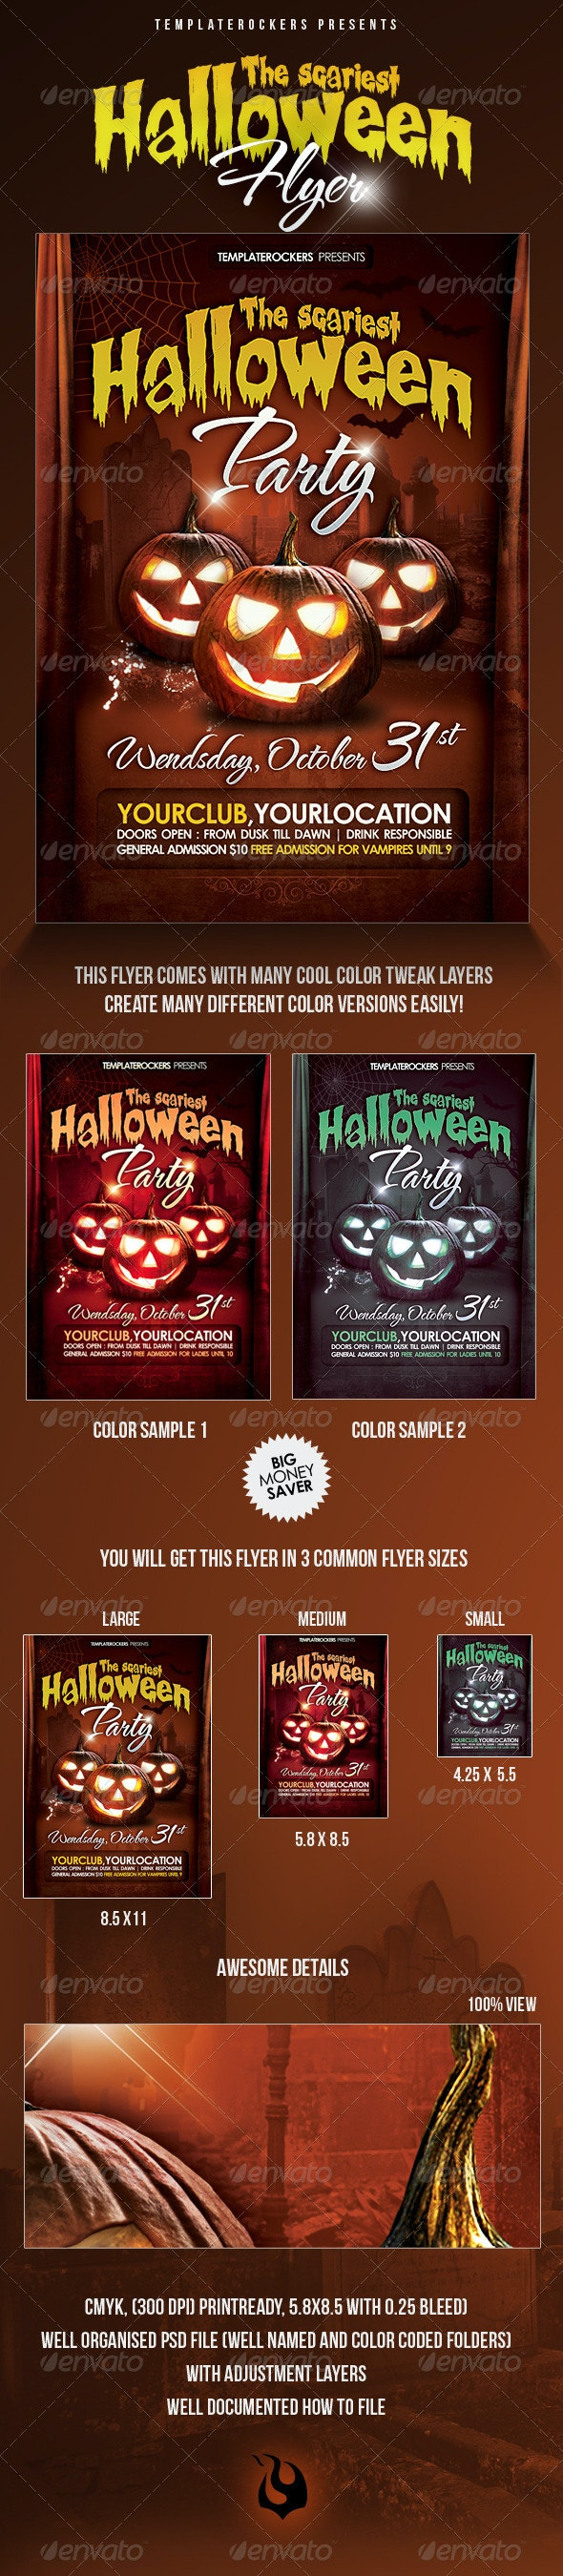 Scariest Halloween Party Flyer - 3 Sizes - Clubs & Parties Events